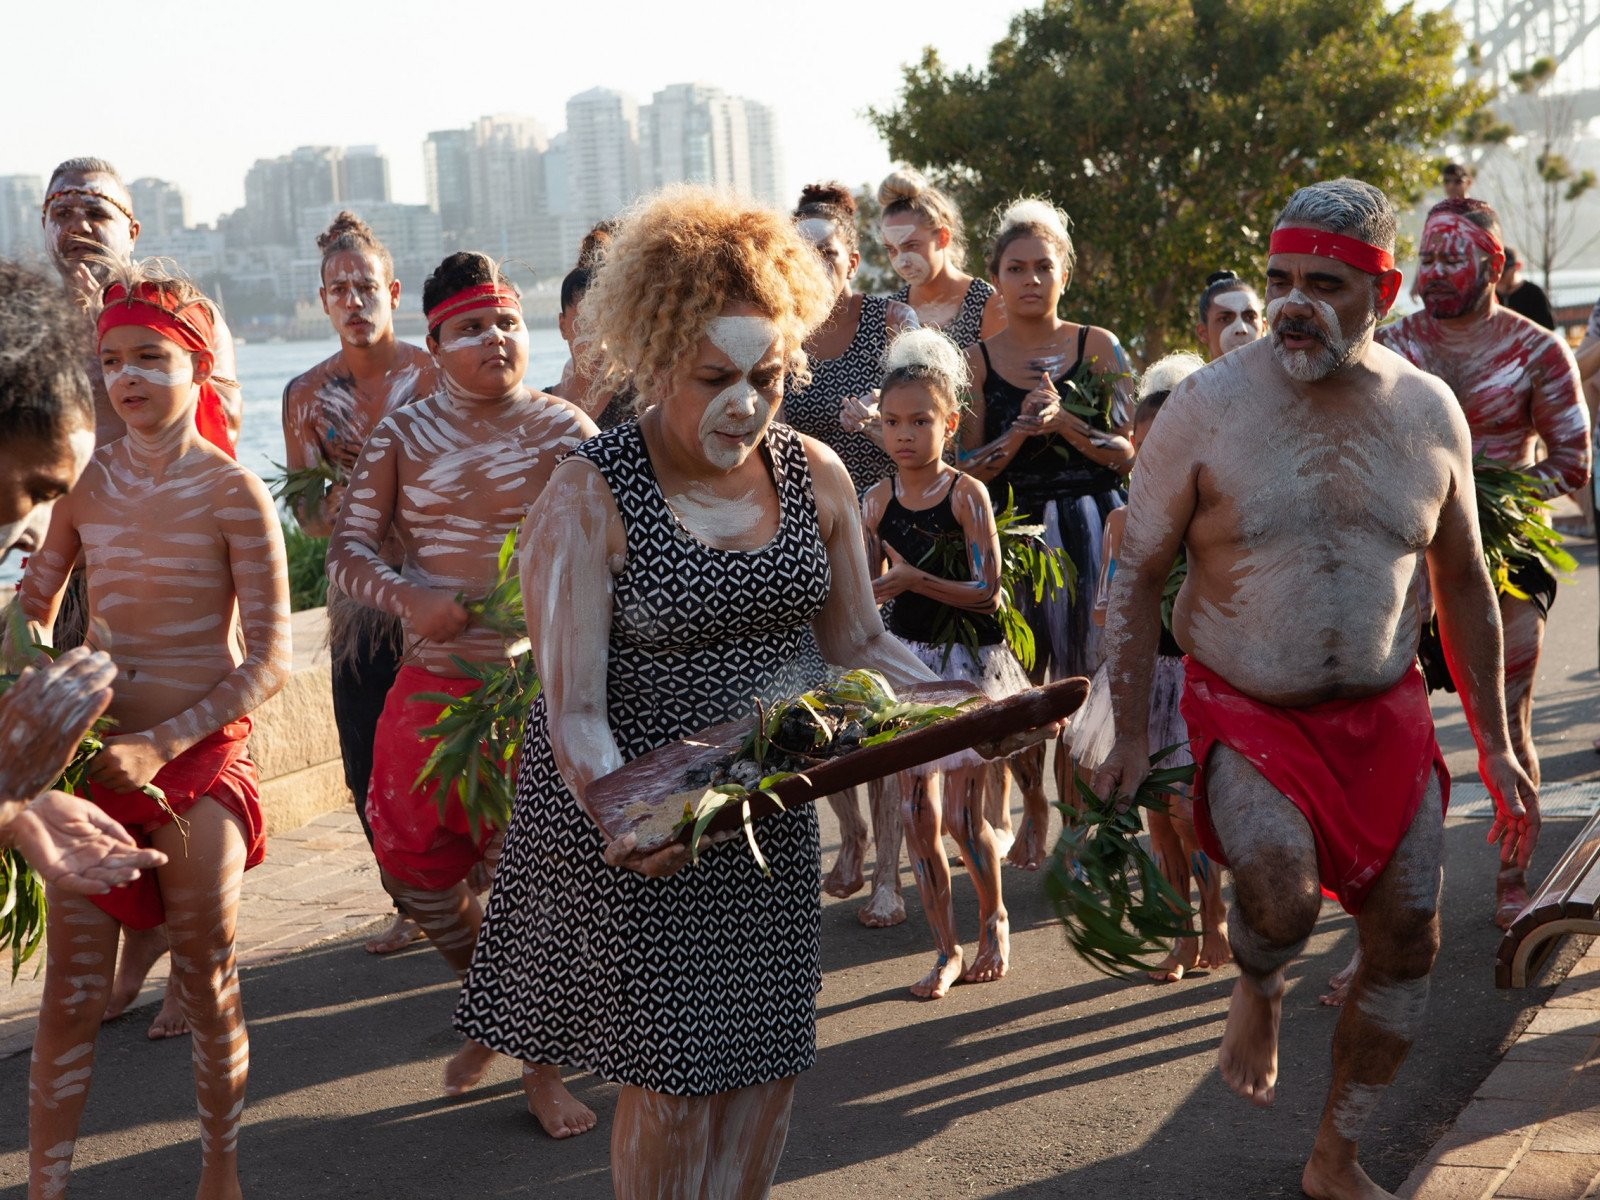 Transporting the fire from the foreshore to the lawns for the the Wugulora Indigenous Morning Ceremony